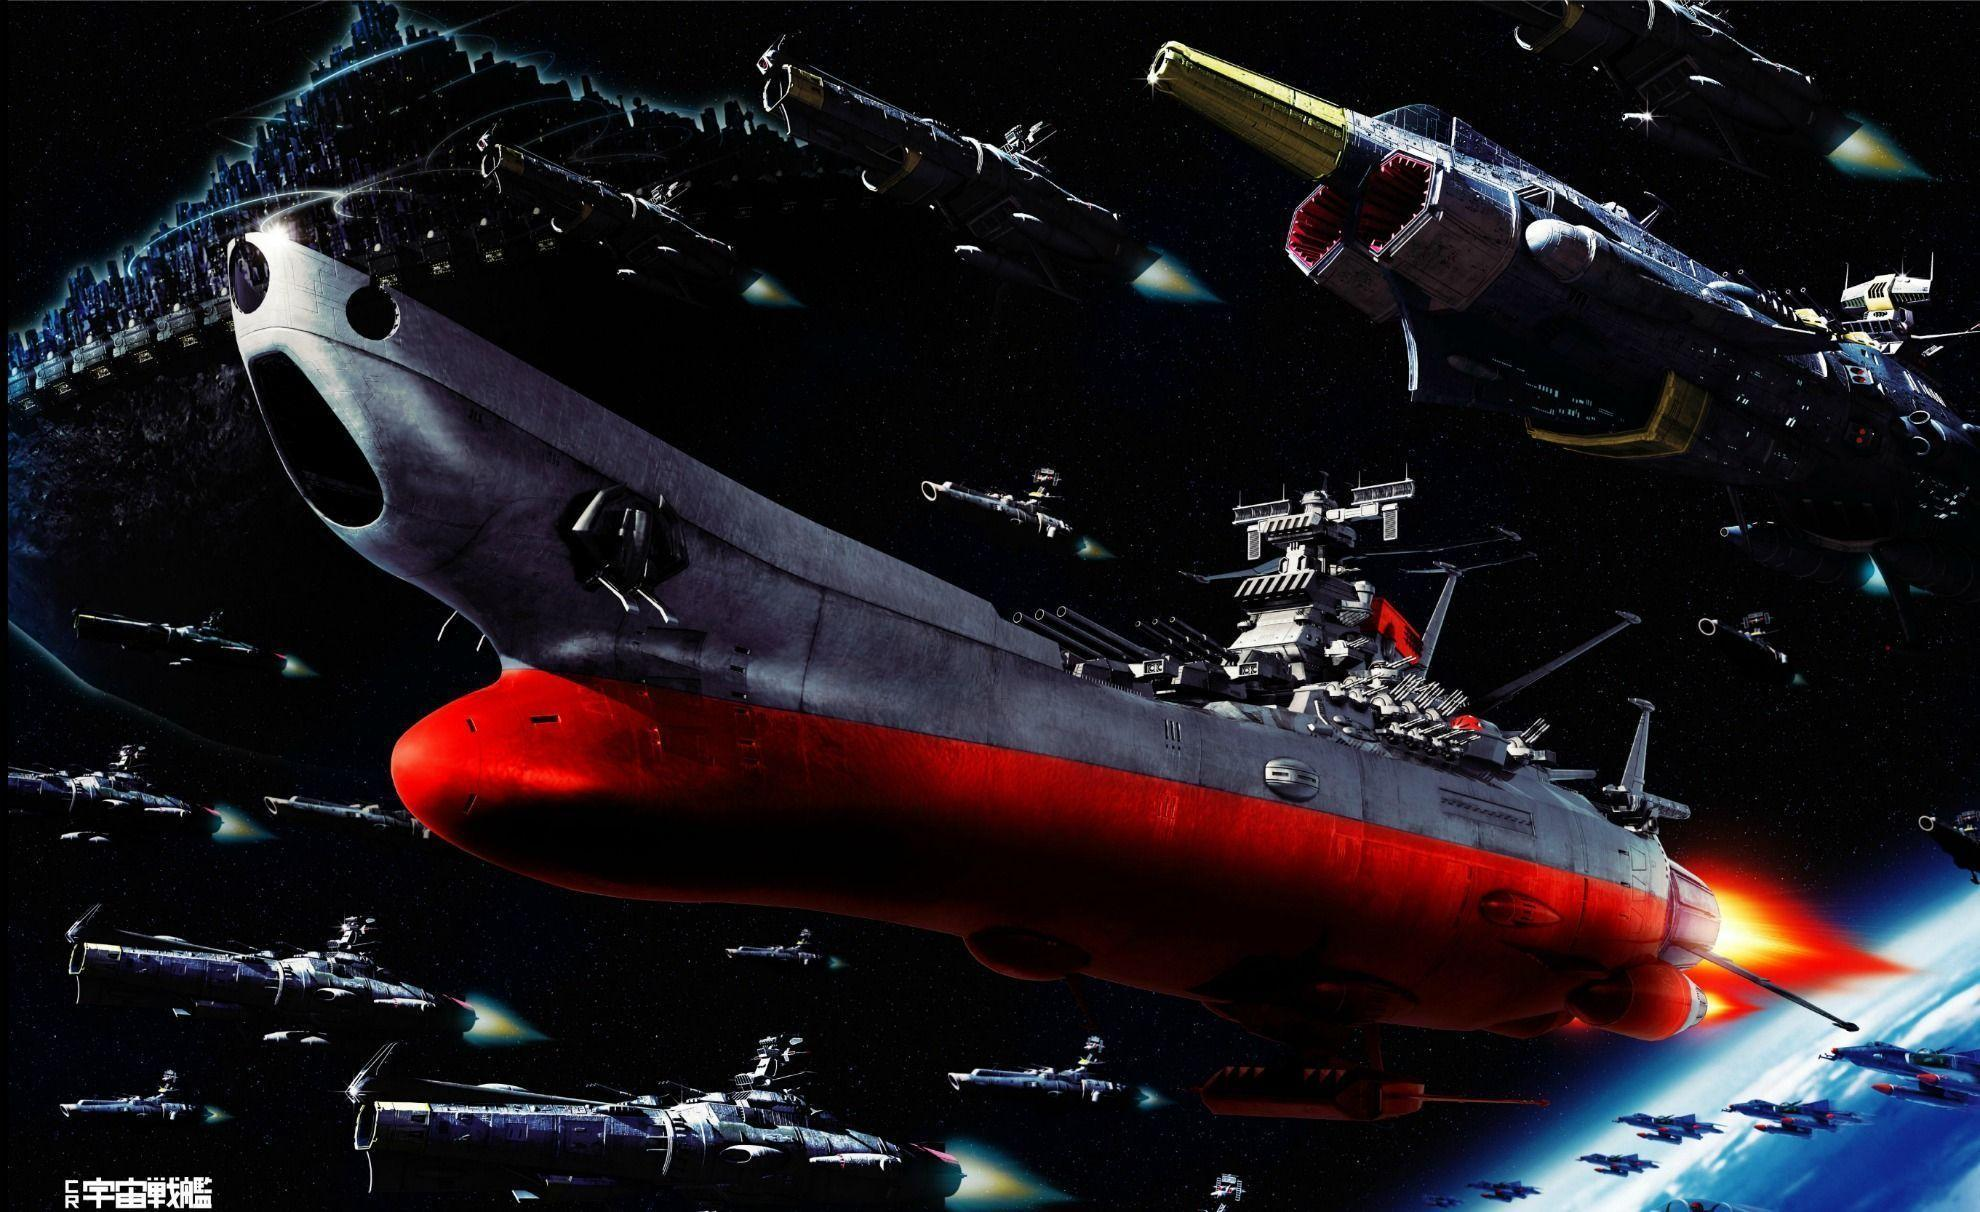 951 Spaceship Wallpapers | Spaceship Backgrounds Page 10